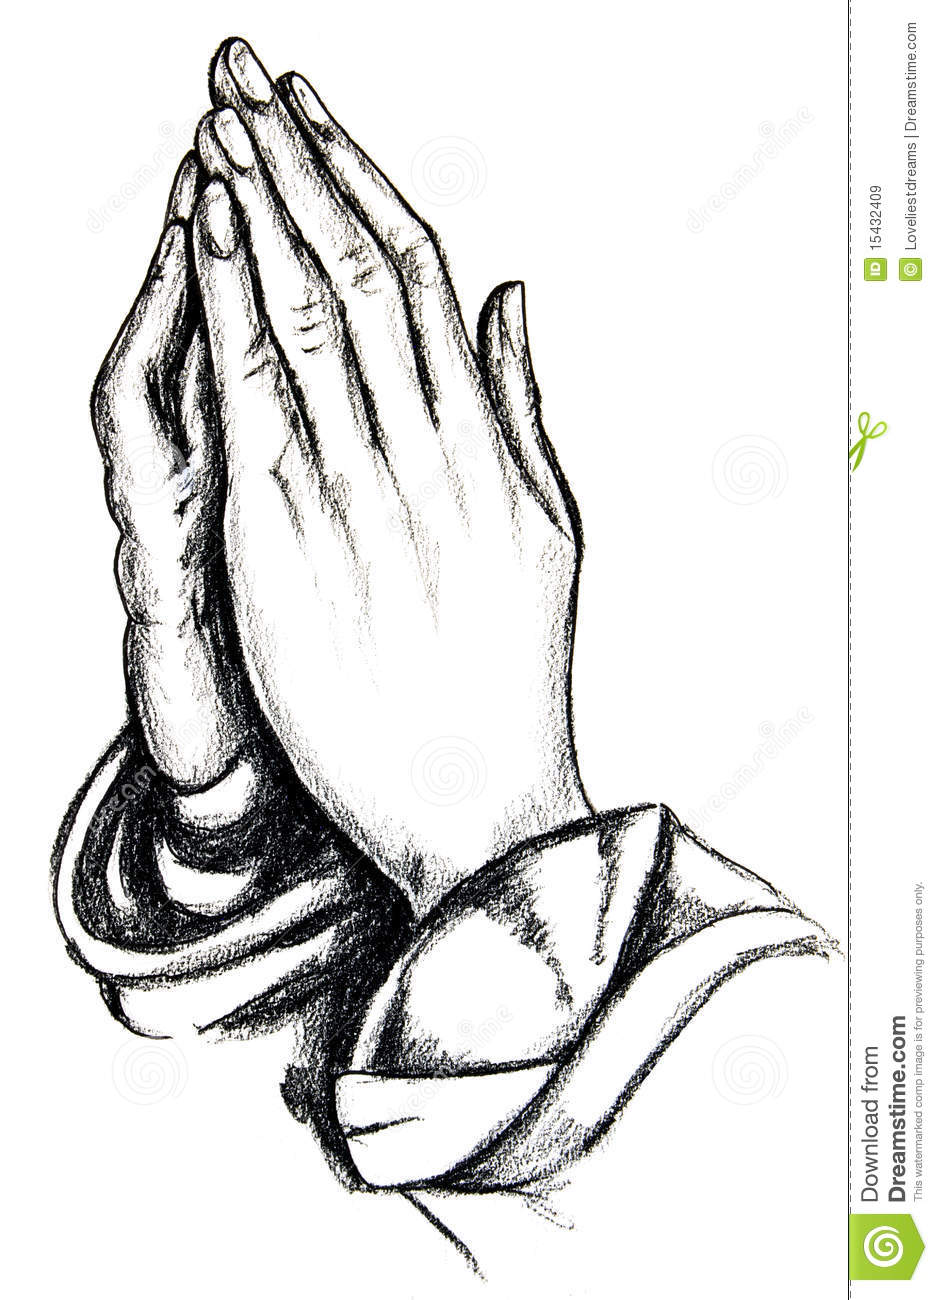 Clipart of praying hands vector transparent clip art of praying hands. | Clipart Panda - Free Clipart Images vector transparent